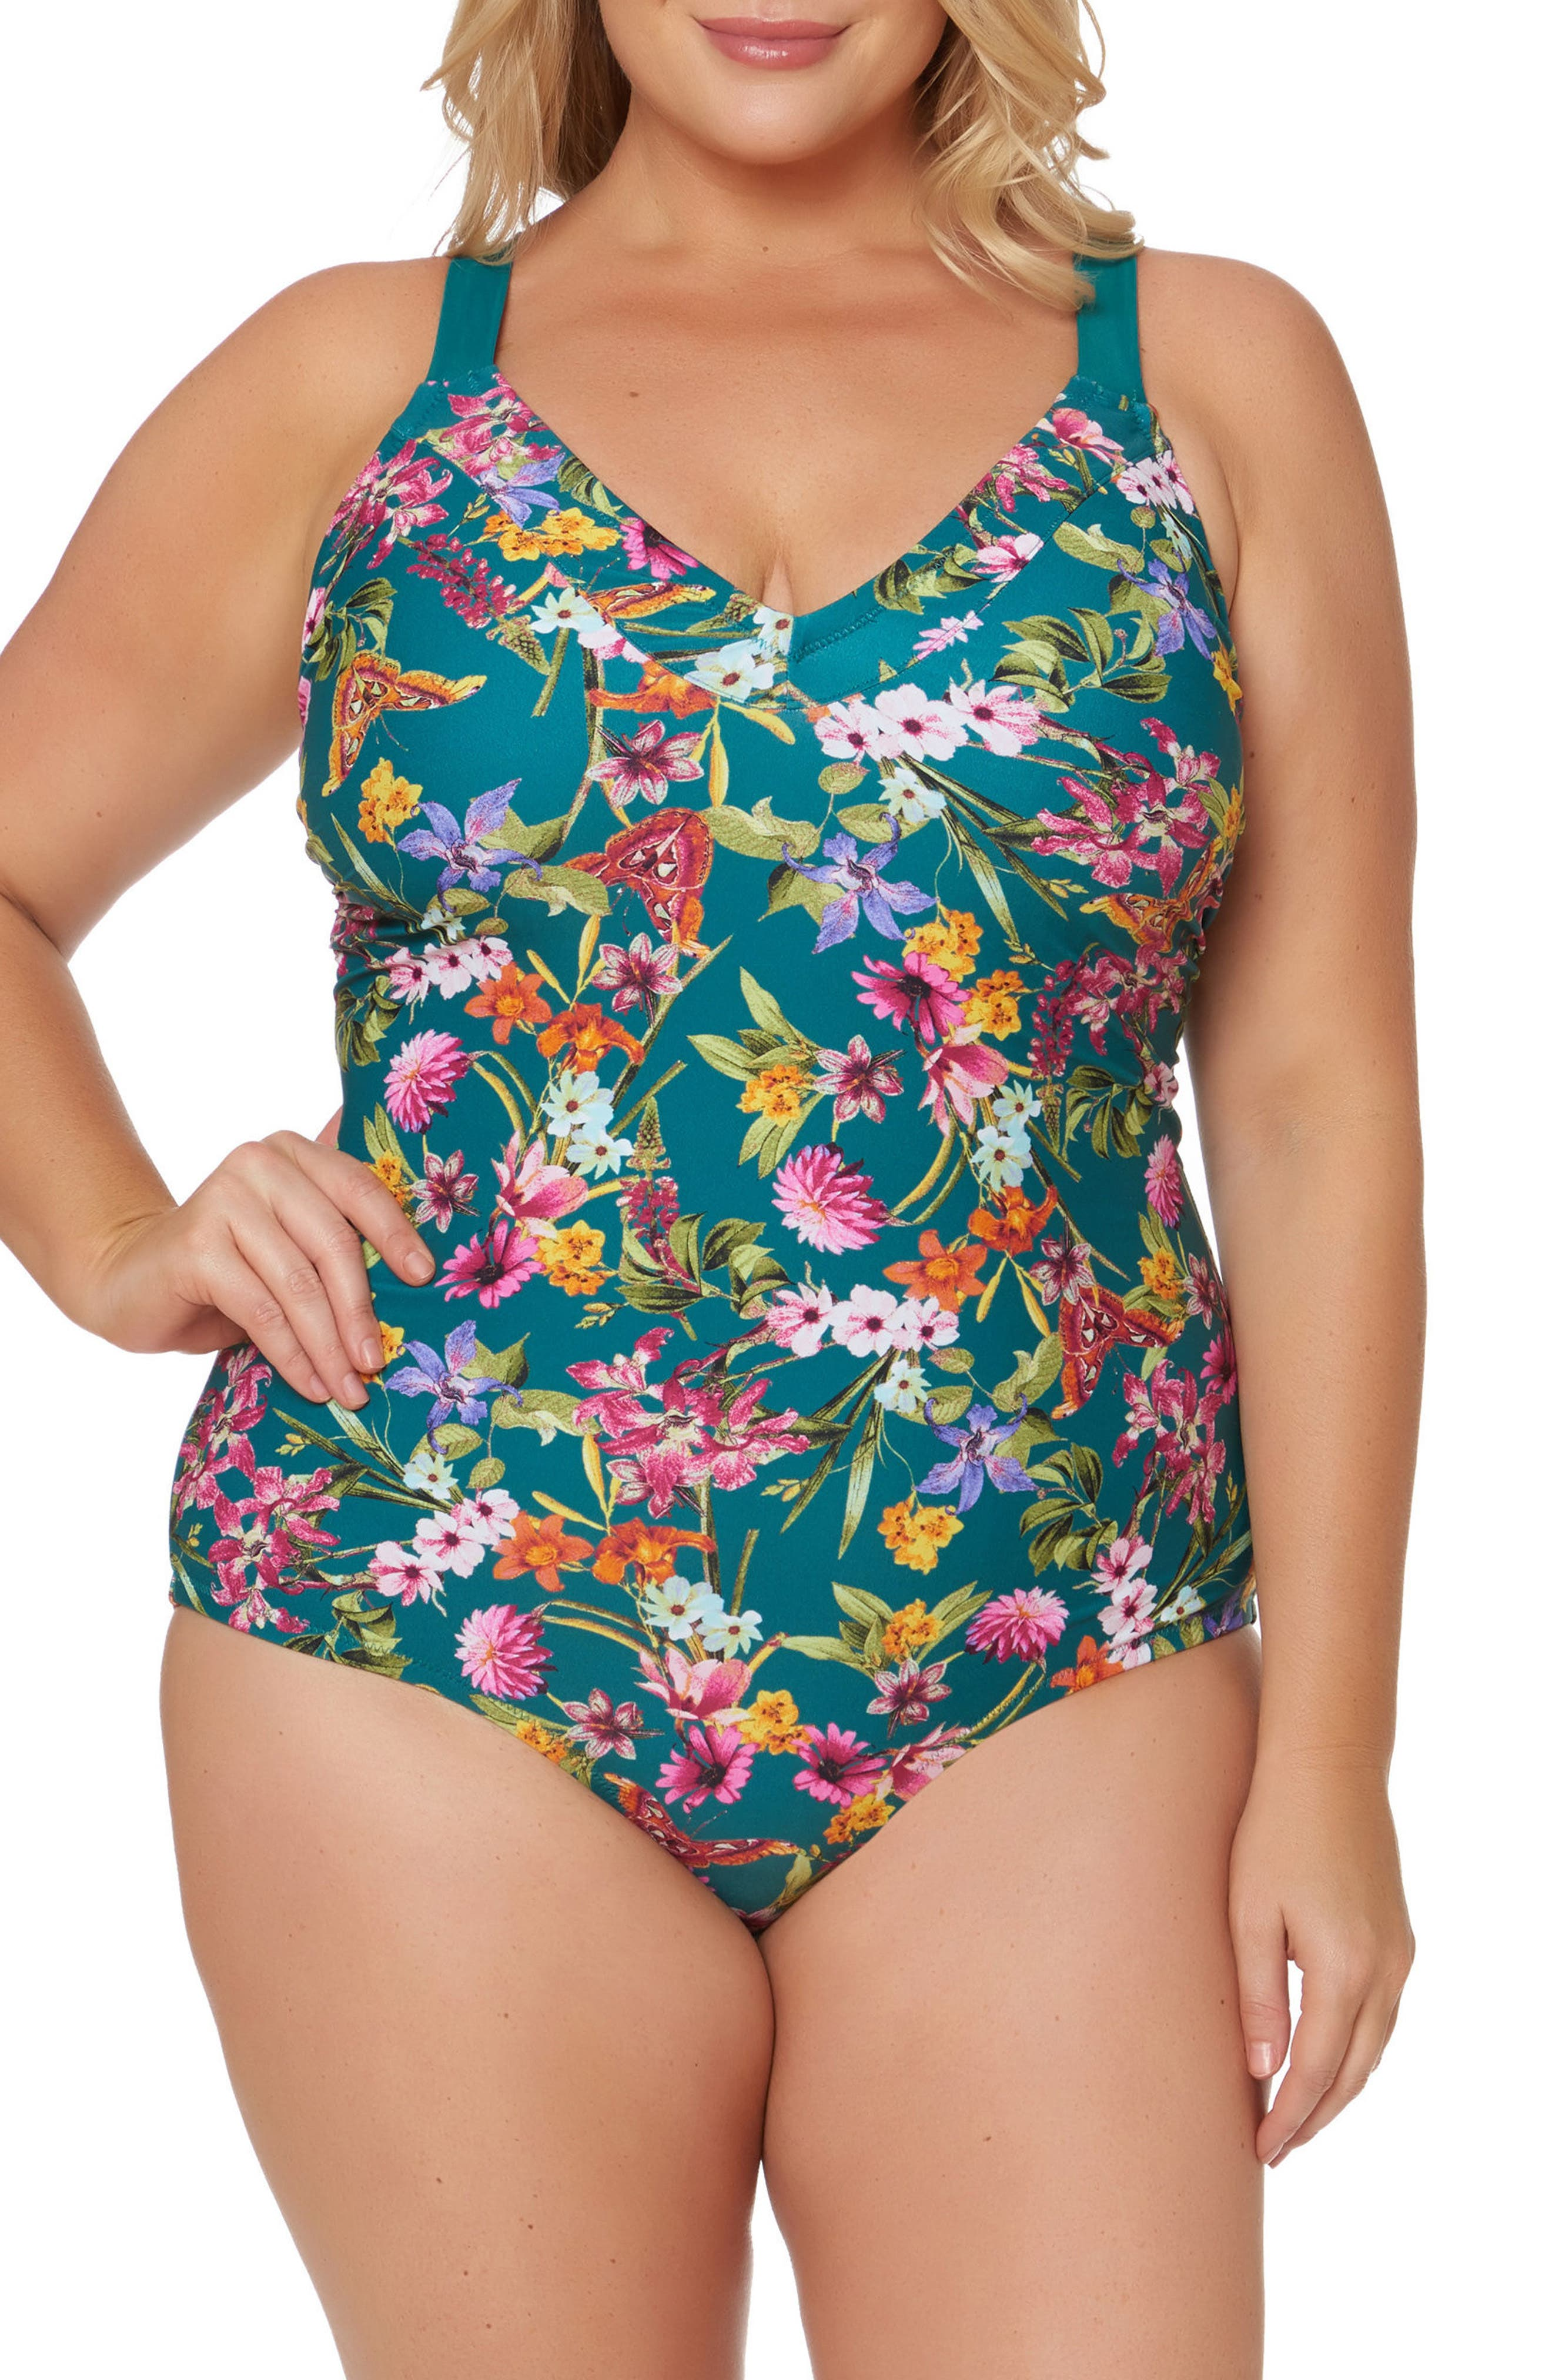 Alternate Image 1 Selected - Jessica Simpson Floral Print Tie Back One-Piece Swimsuit (Plus Size)